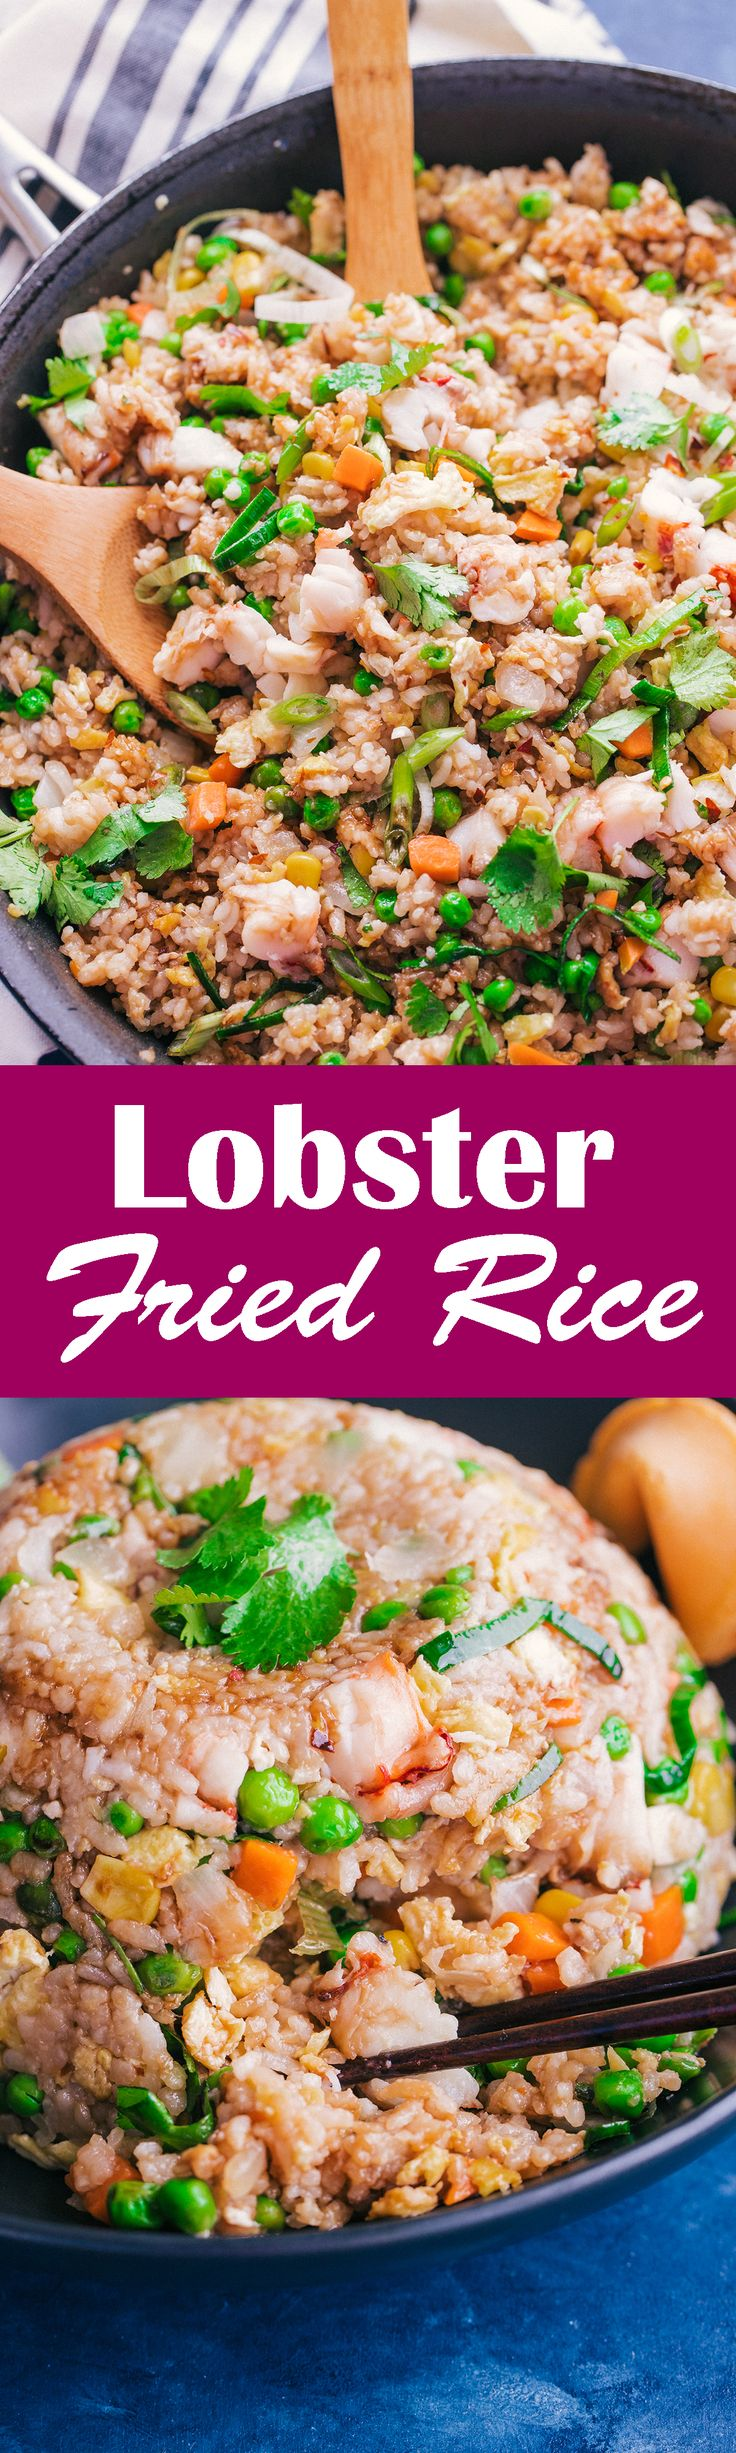 Lobster Fried Rice - The Food Cafe